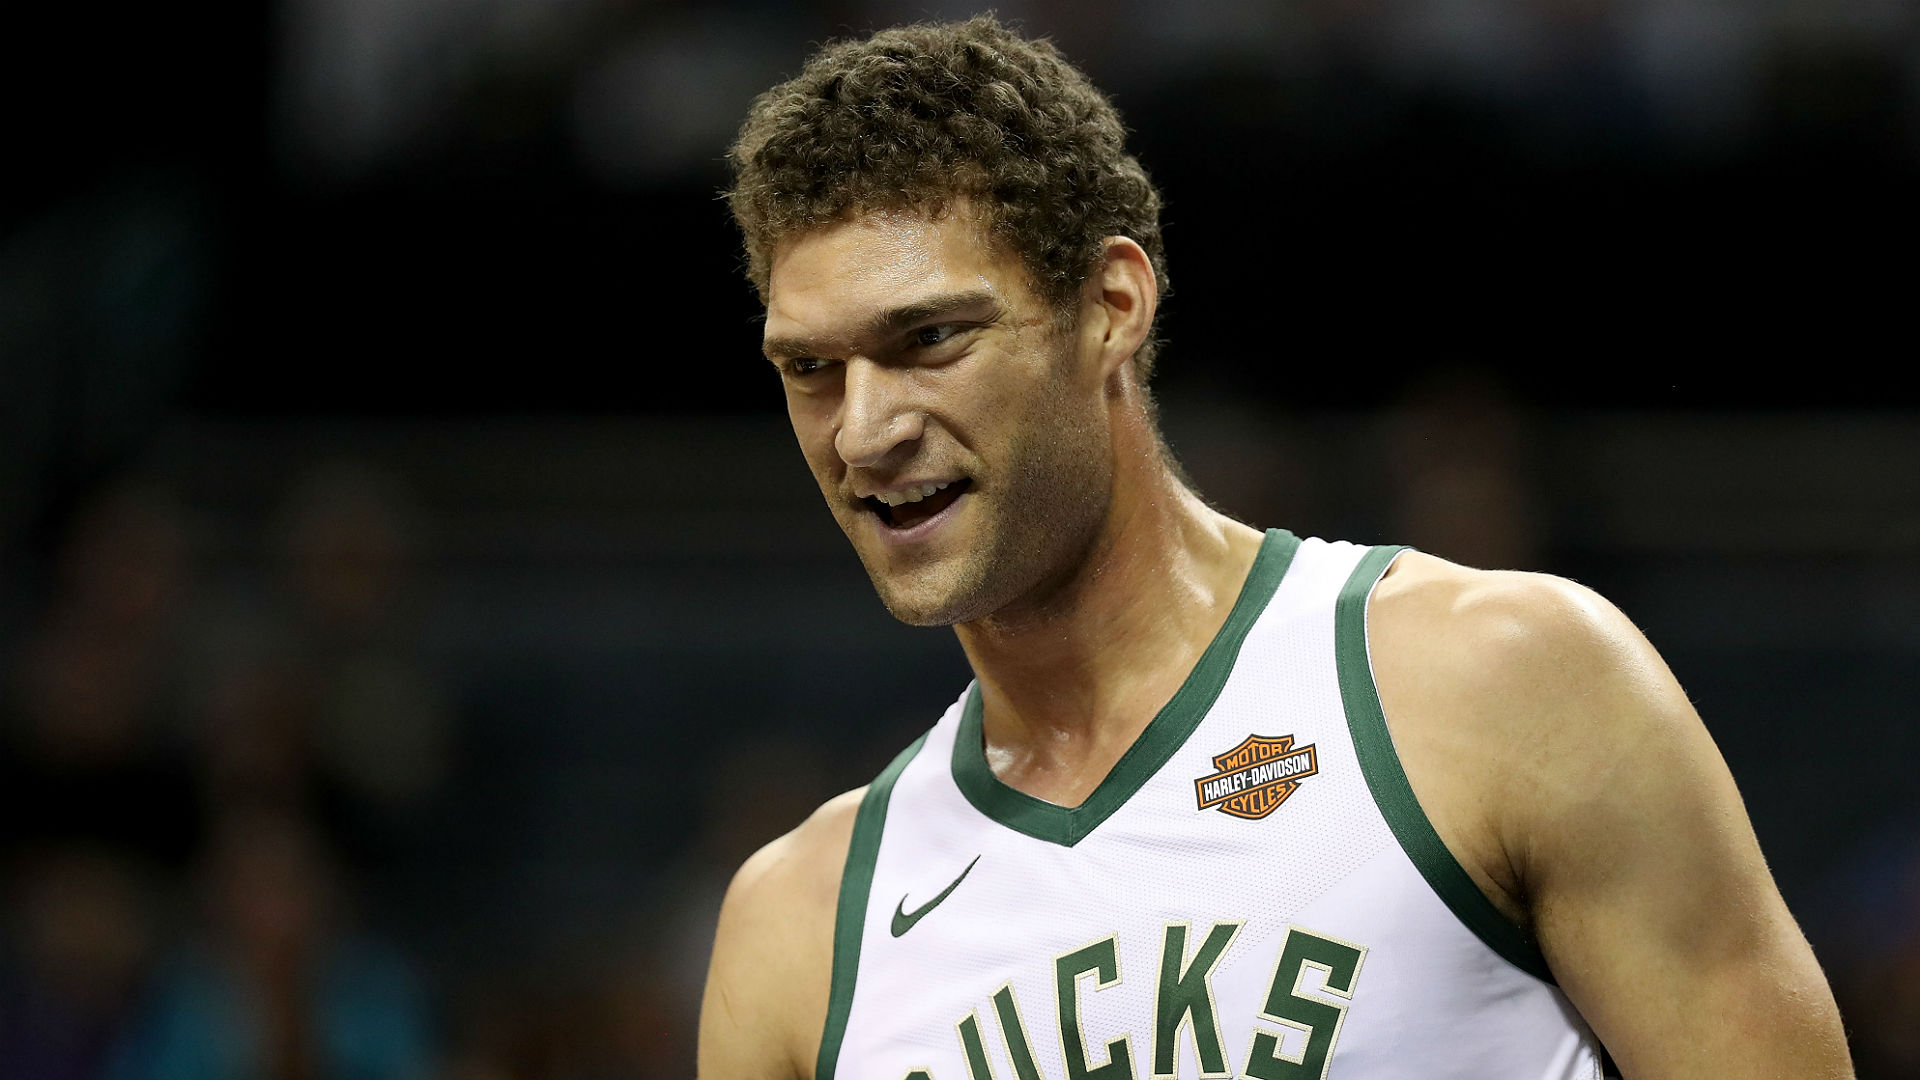 NBA free agency rumors: Re-signing Brook Lopez 'is a priority' for Bucks